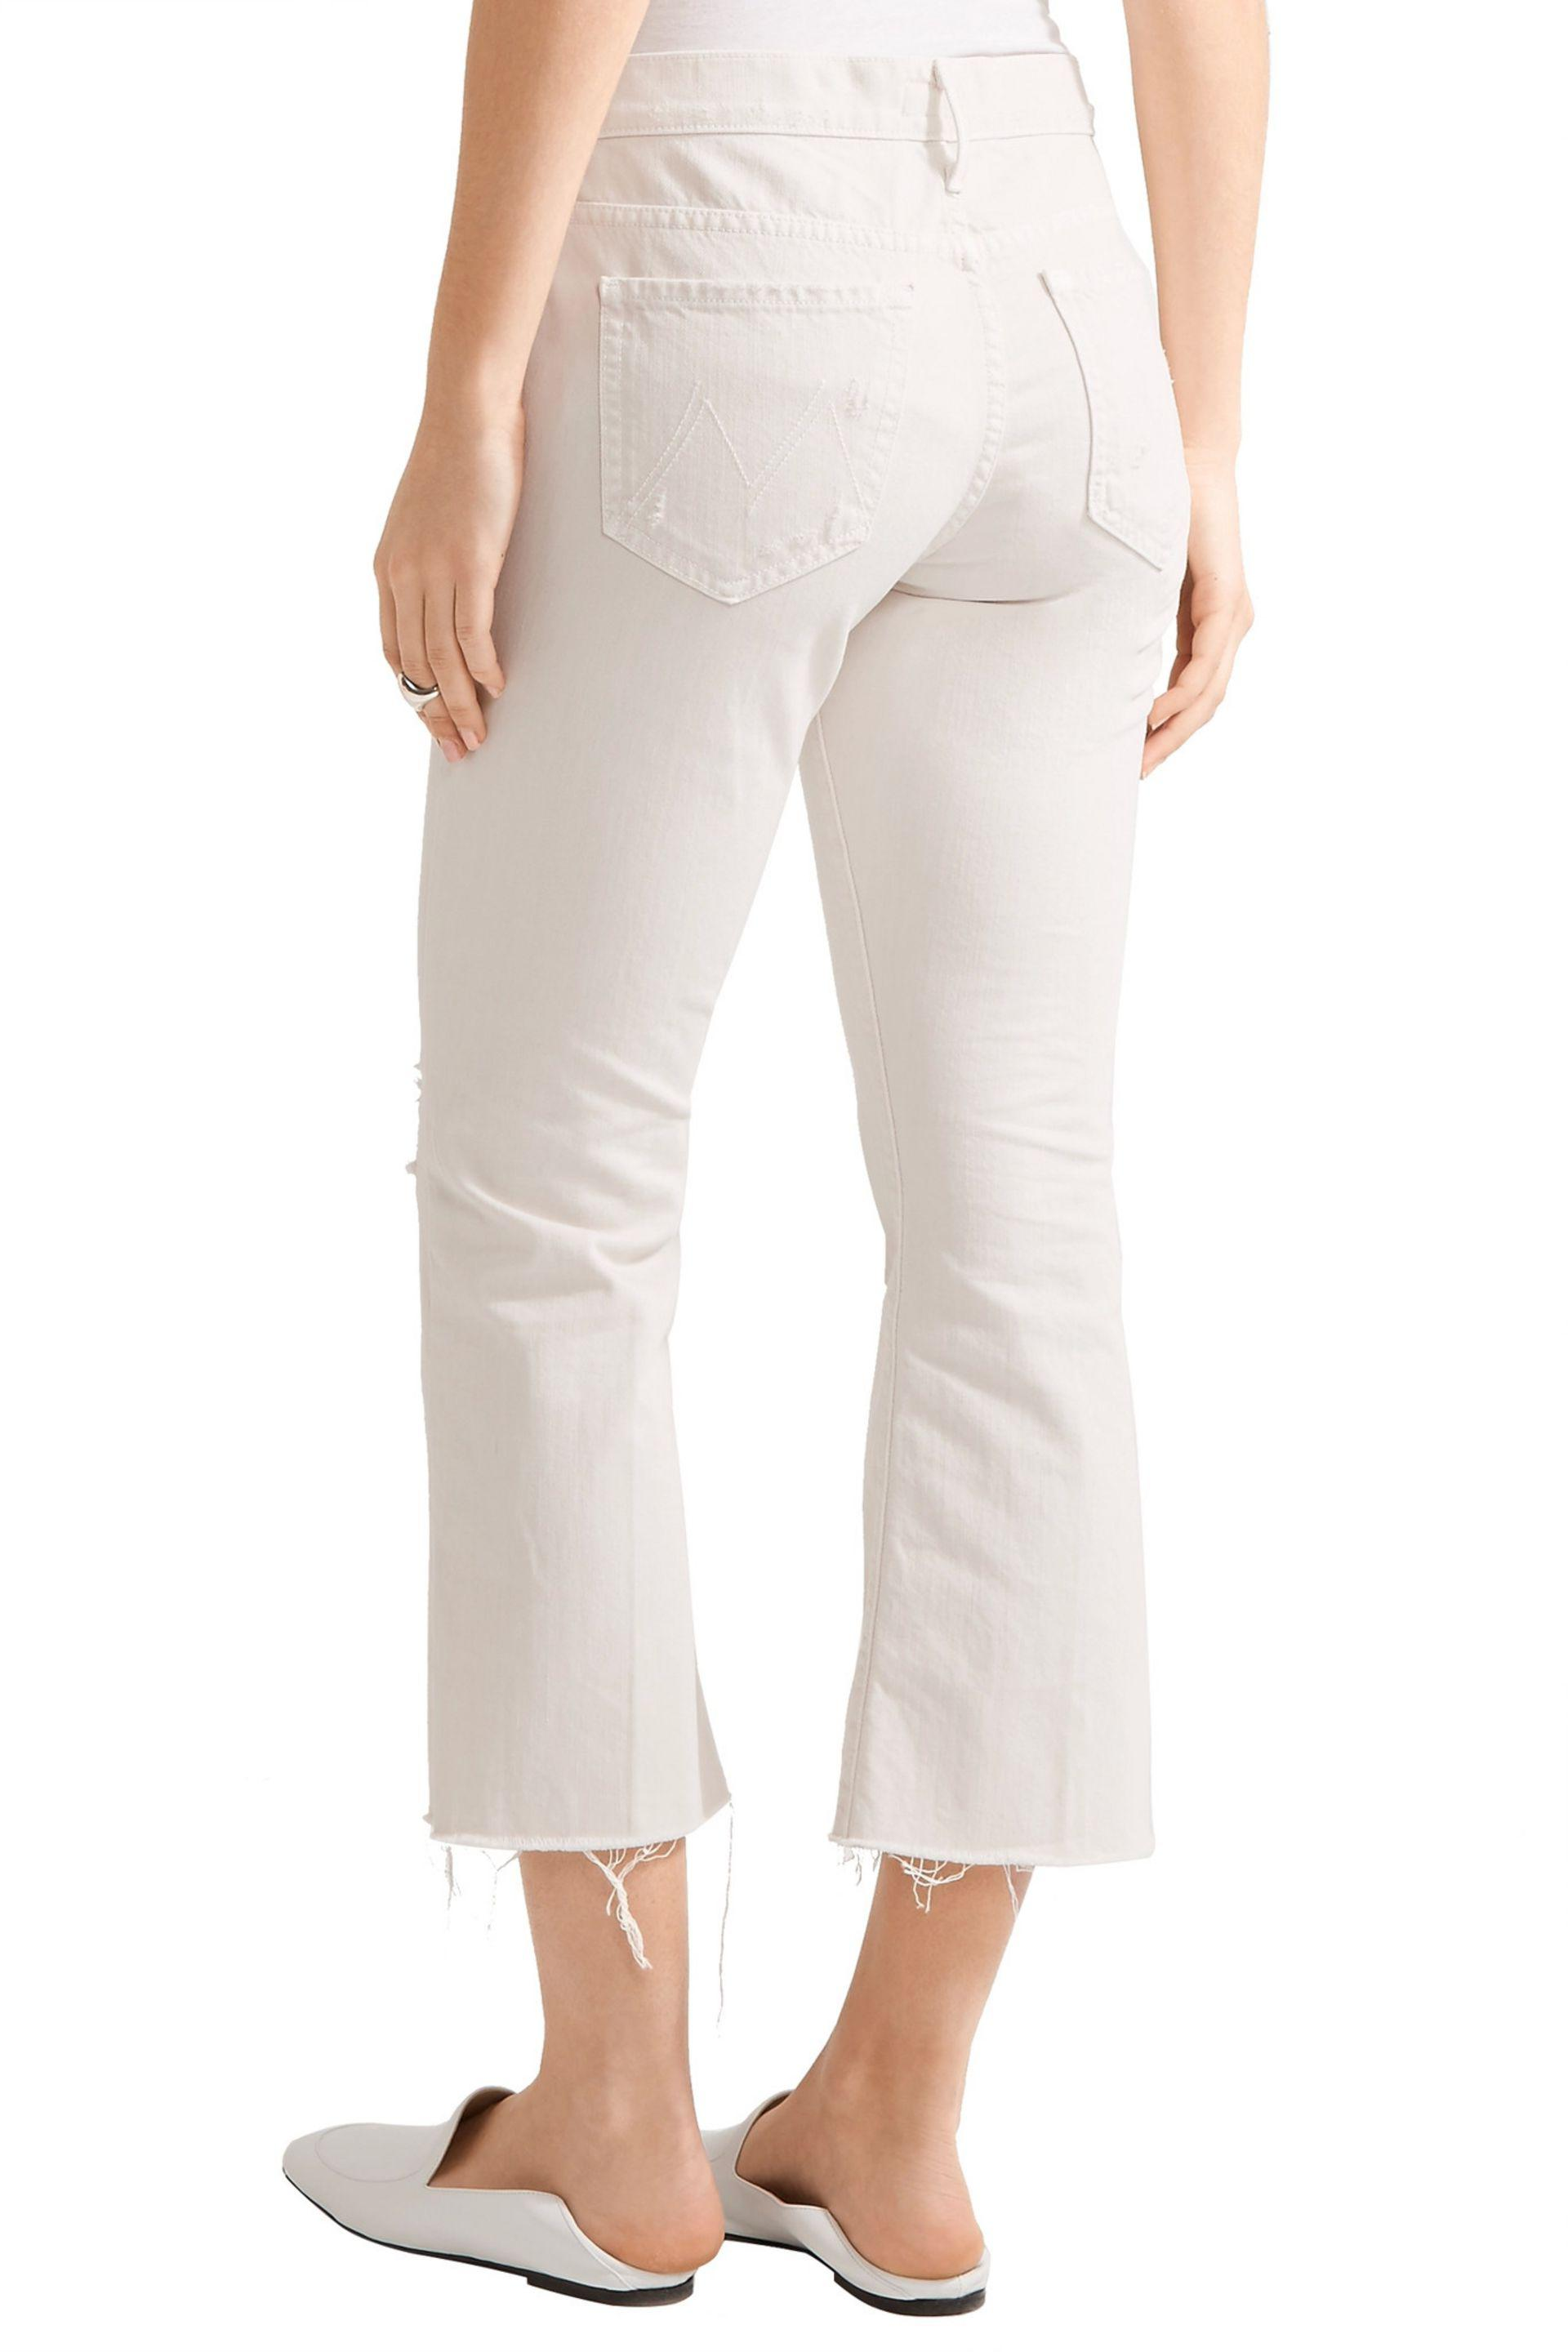 Sale Affordable Mother Woman The Nomad Cropped Distressed Mid-rise Flared Jeans Ecru Size 29 Mother Sale Pay With Paypal For Sale jZ6AZMW